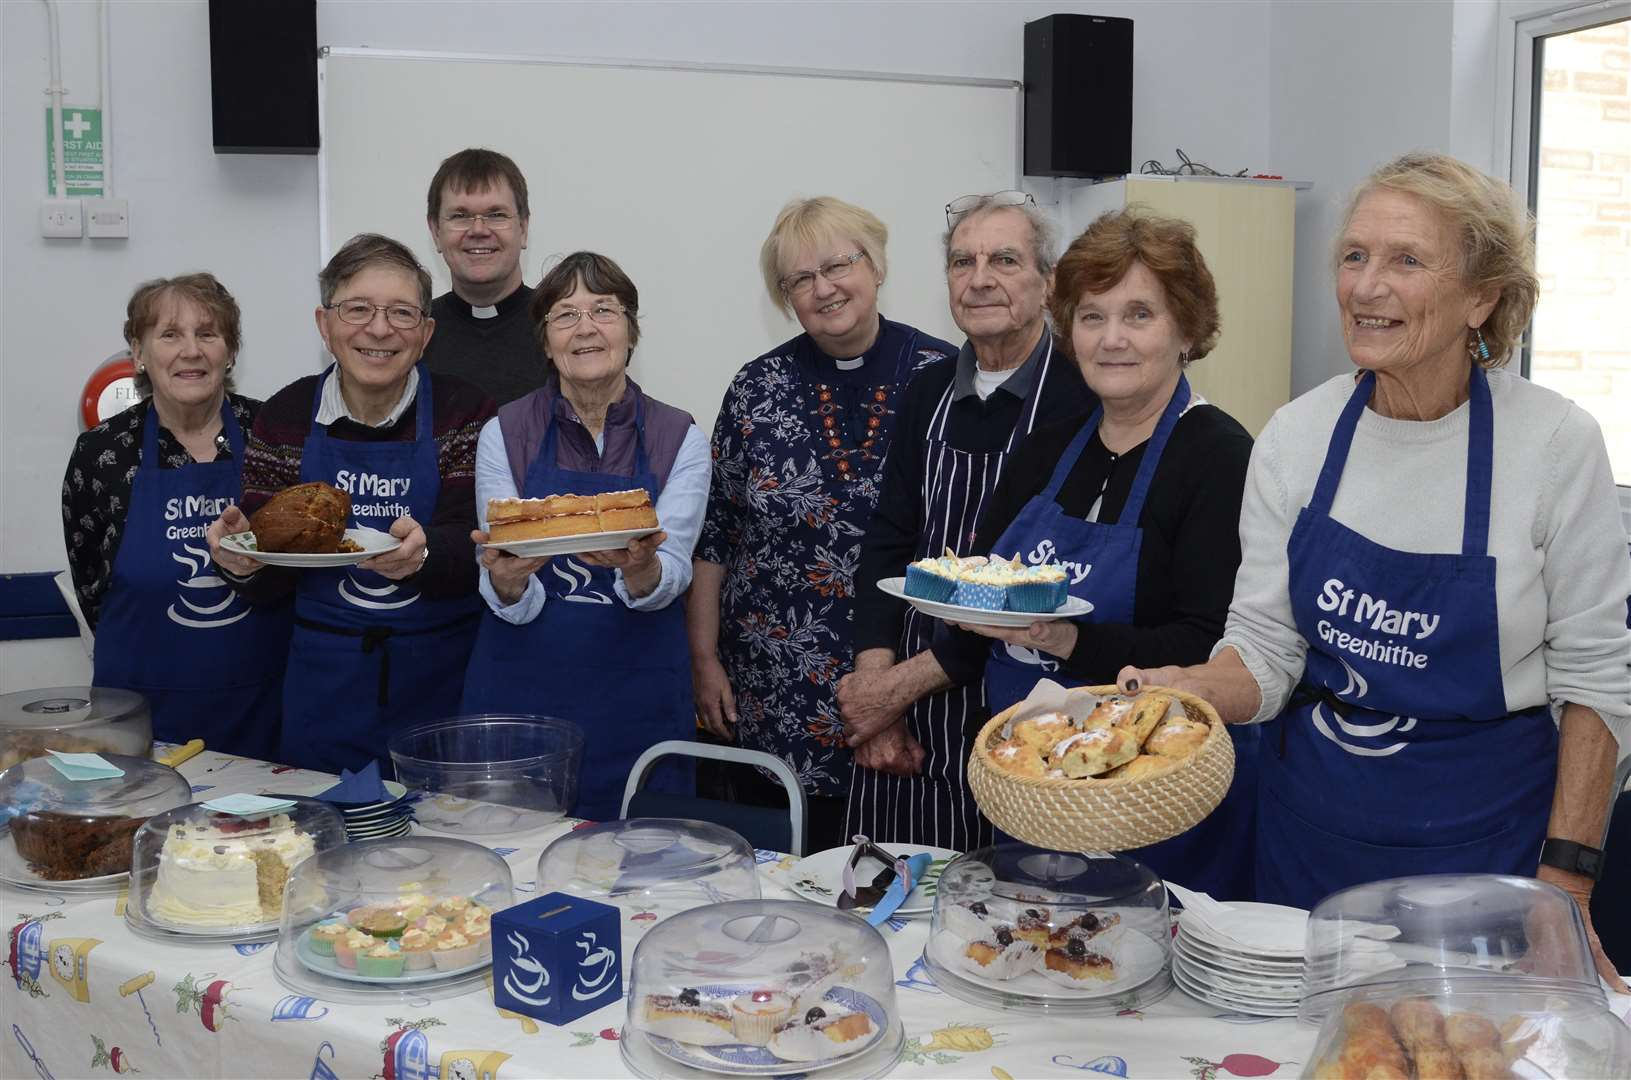 Carol Avery and fellow volunteers at the St Mary Greenhithe Community Cafe. Picture: Chris Davey